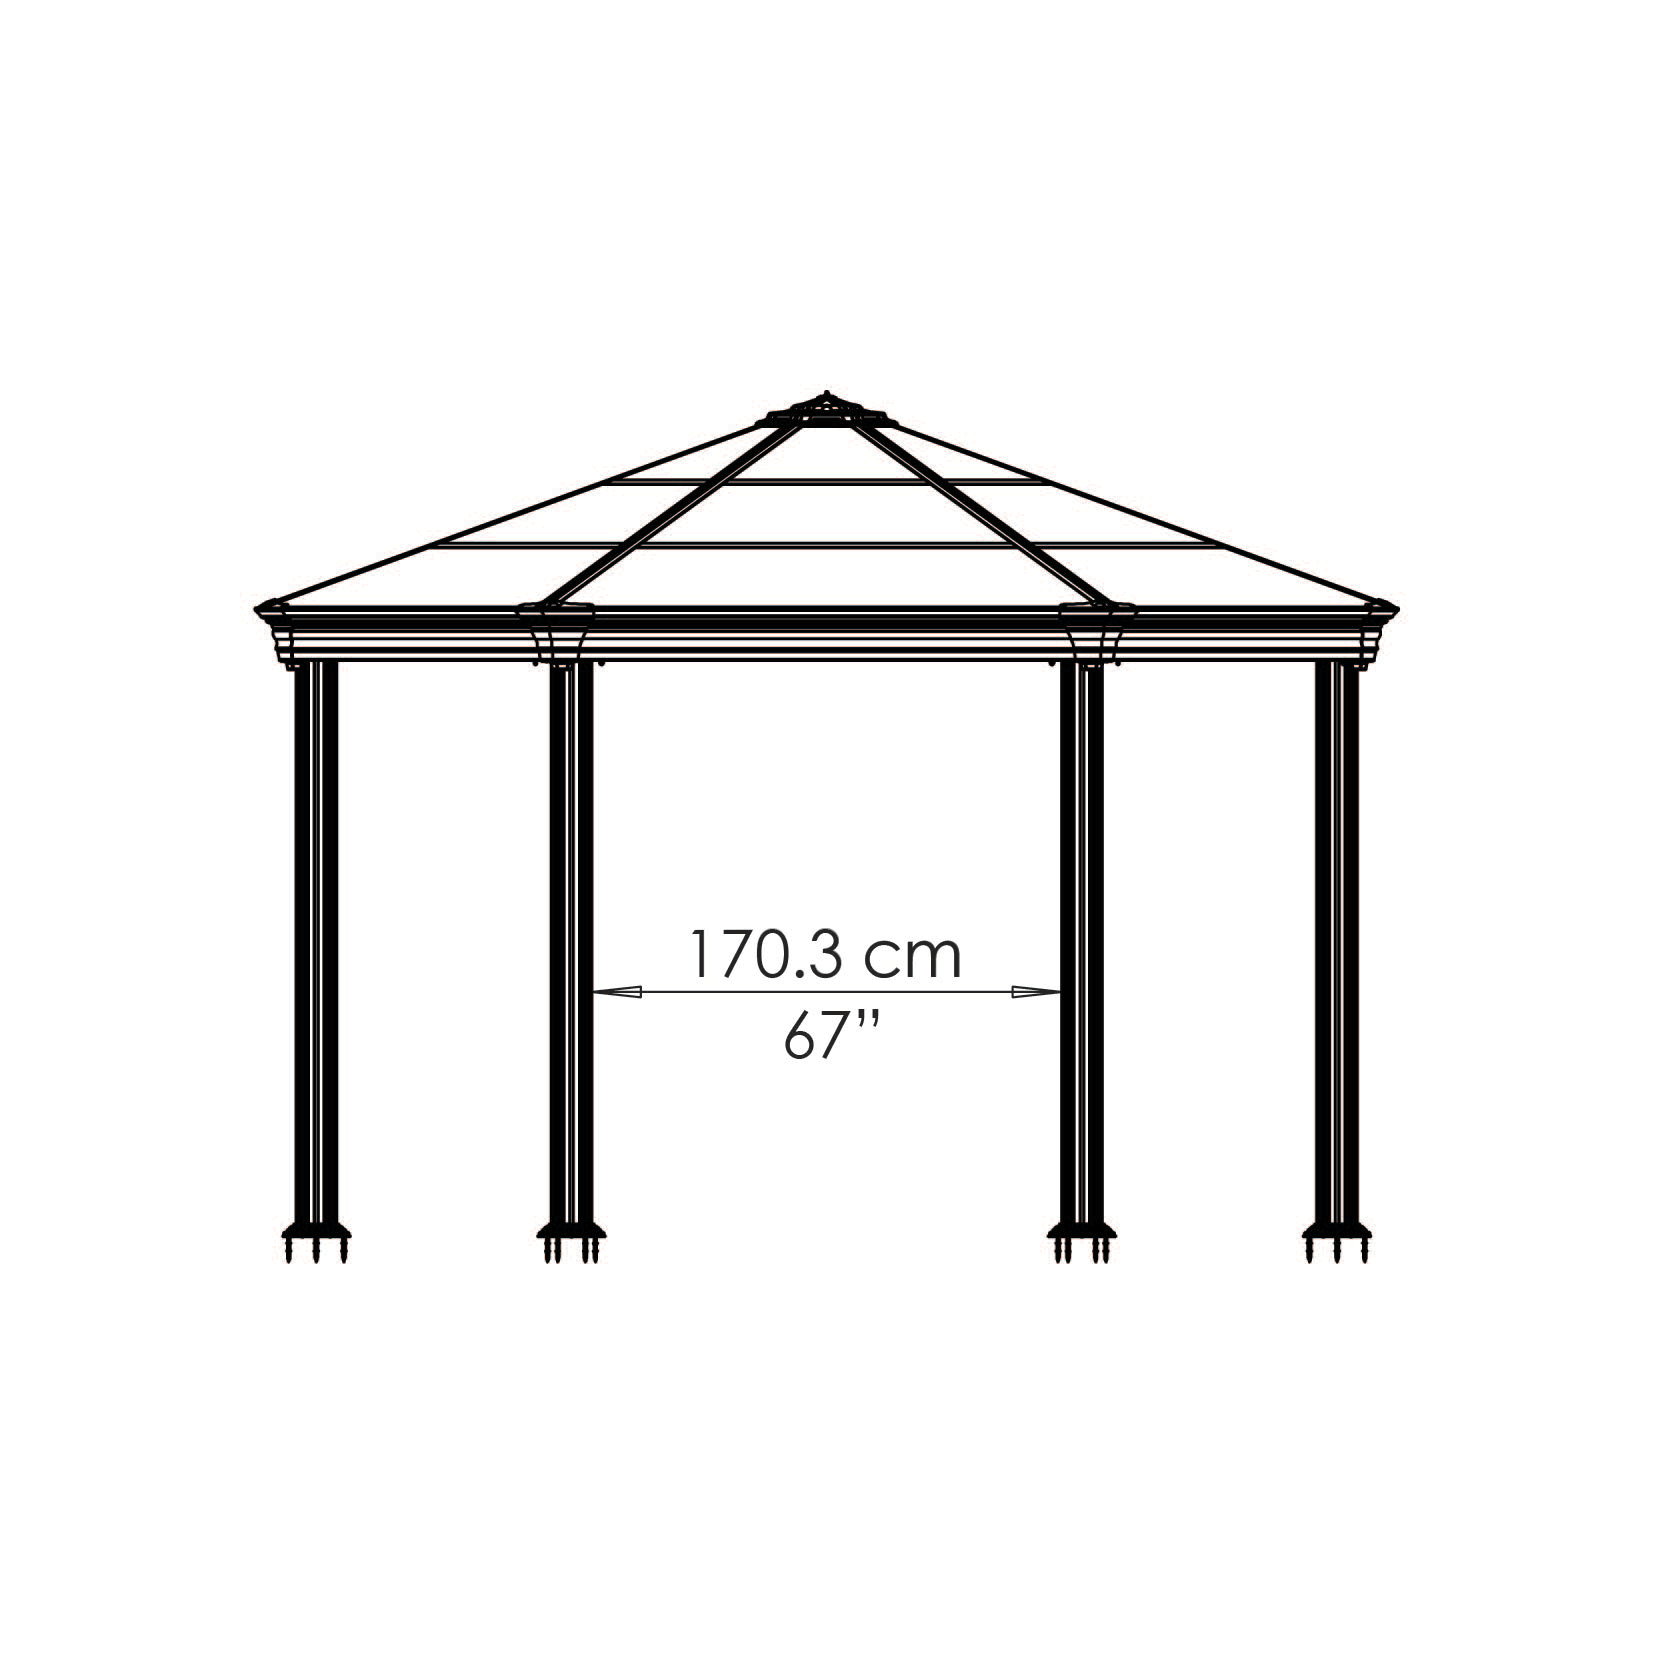 1654x1654 Drawing Landscape Design Canopy Pictures And Ideas On Pro